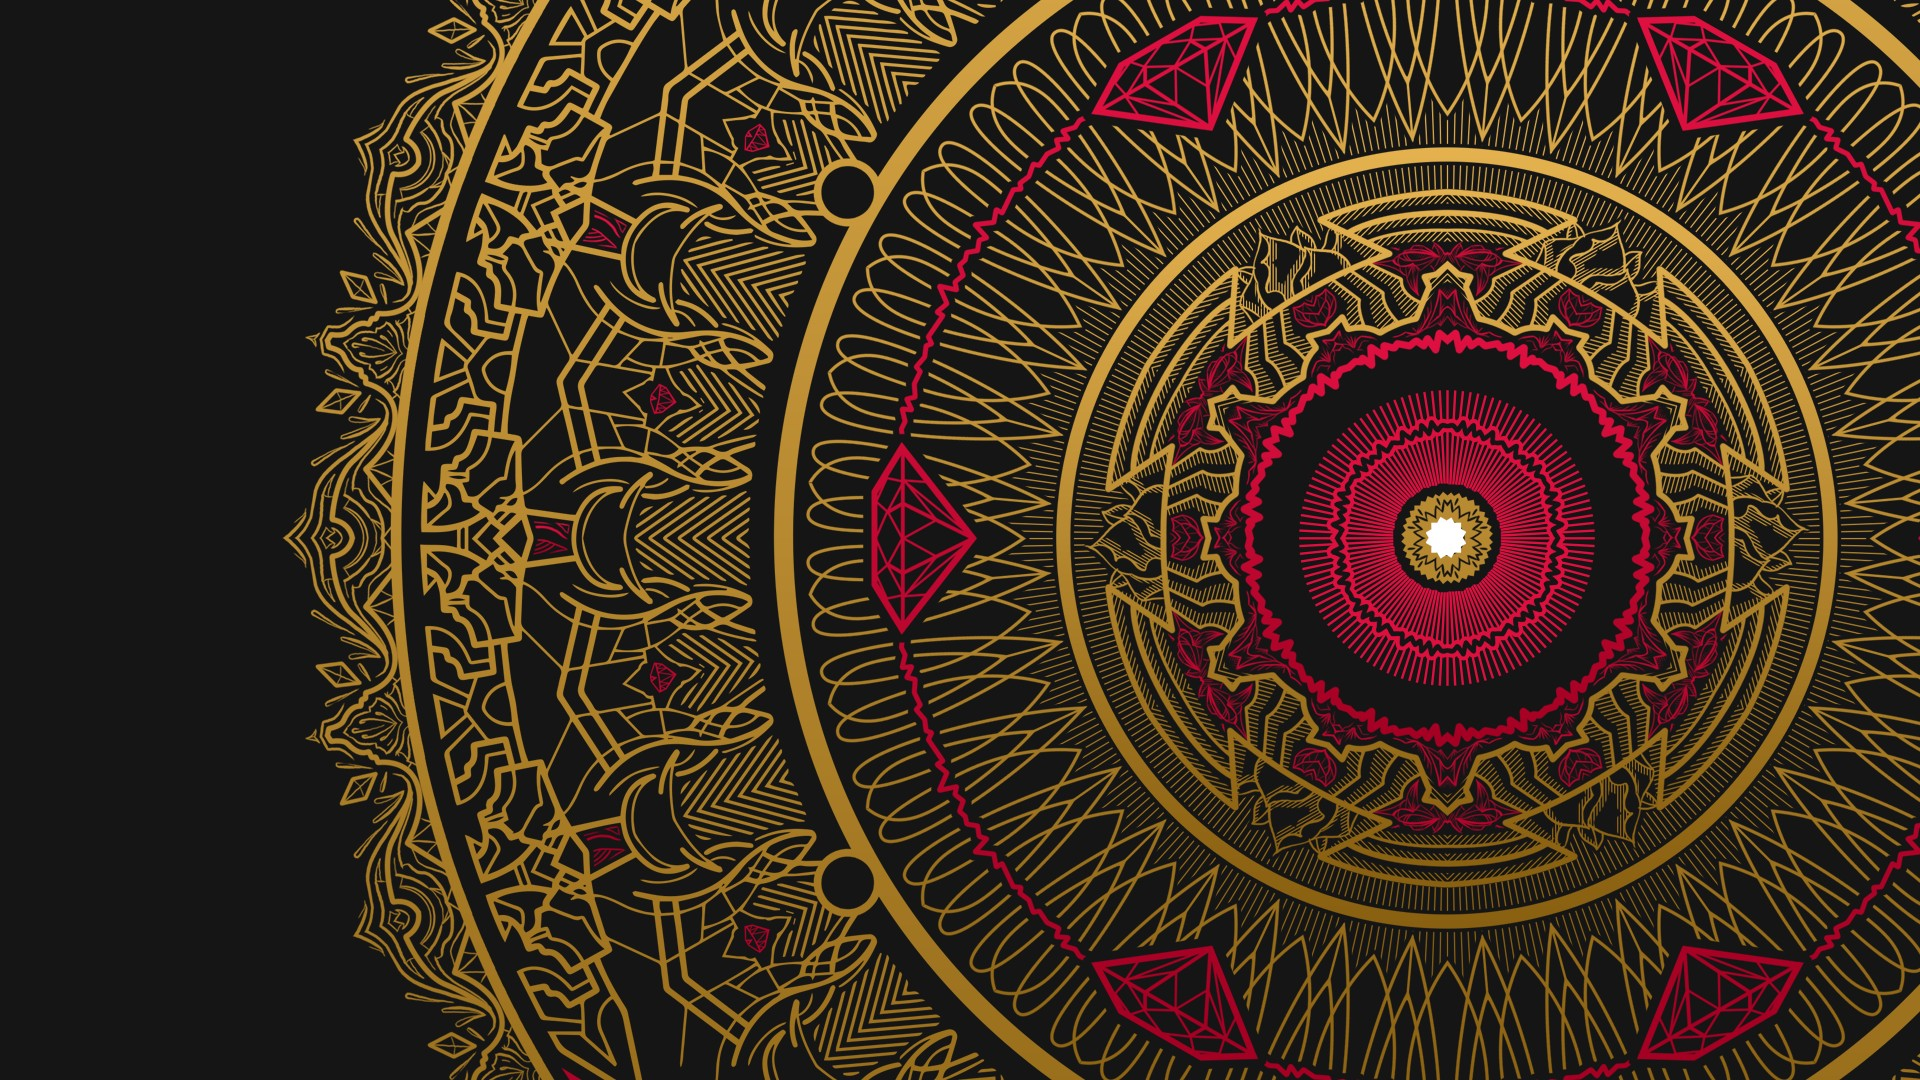 Wallpaper iphone mandala - 1920x1080